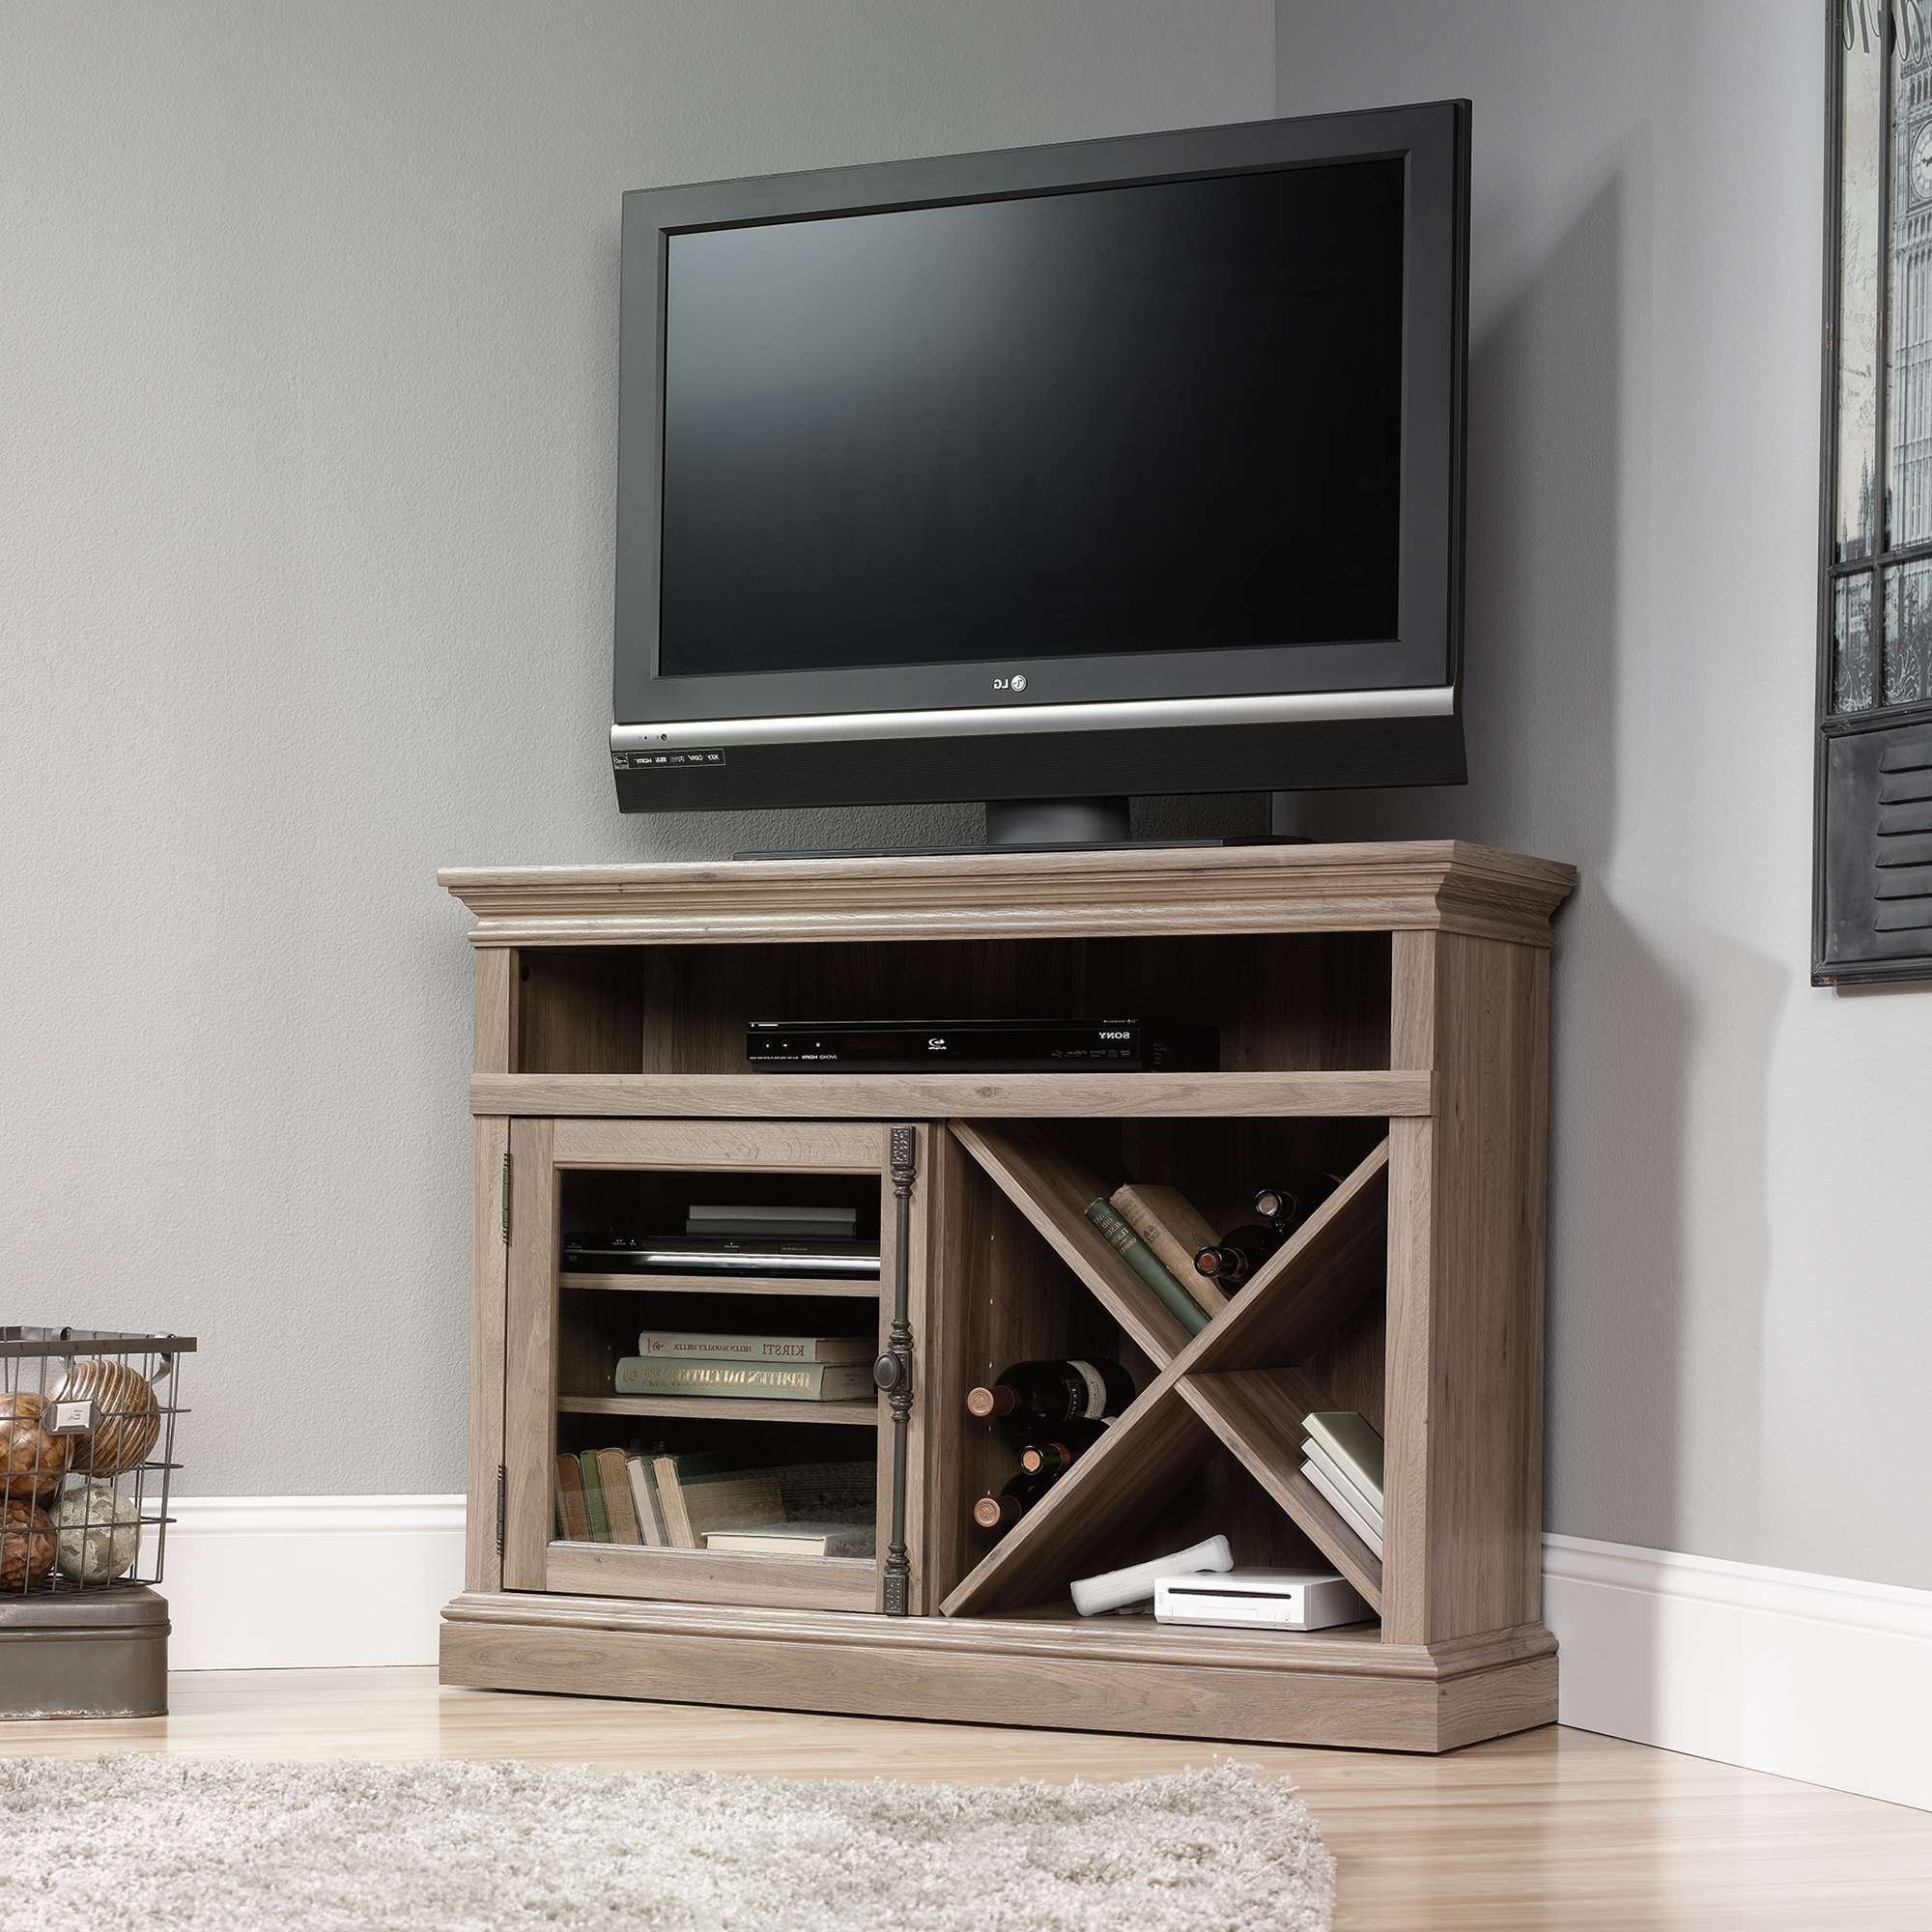 Barrister Lane | Corner Tv Stand | 414729 | Sauder Pertaining To Tv Stands For Corners (View 2 of 20)